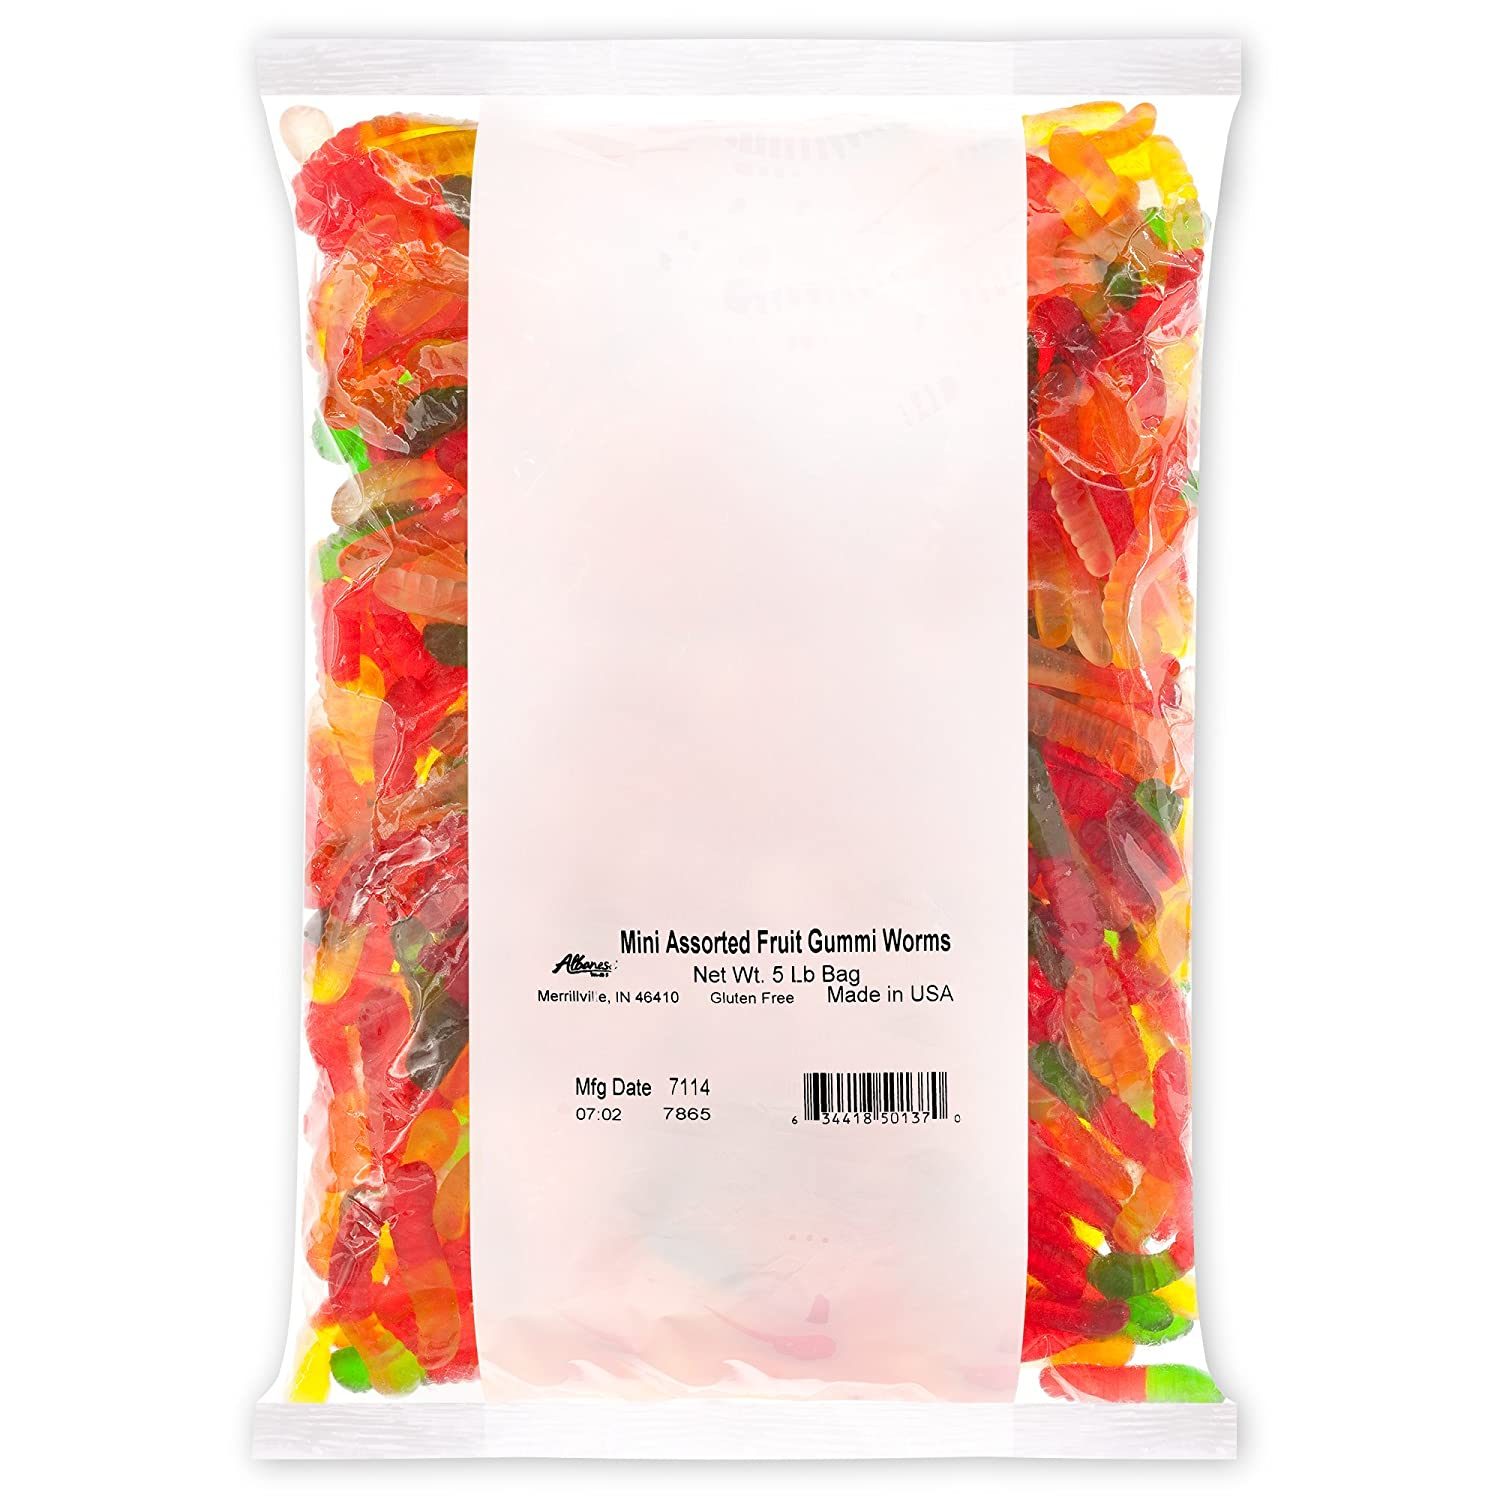 Albanese Confectionery Mini Assorted Fruit Gummi Worms, 5 Pound Bag